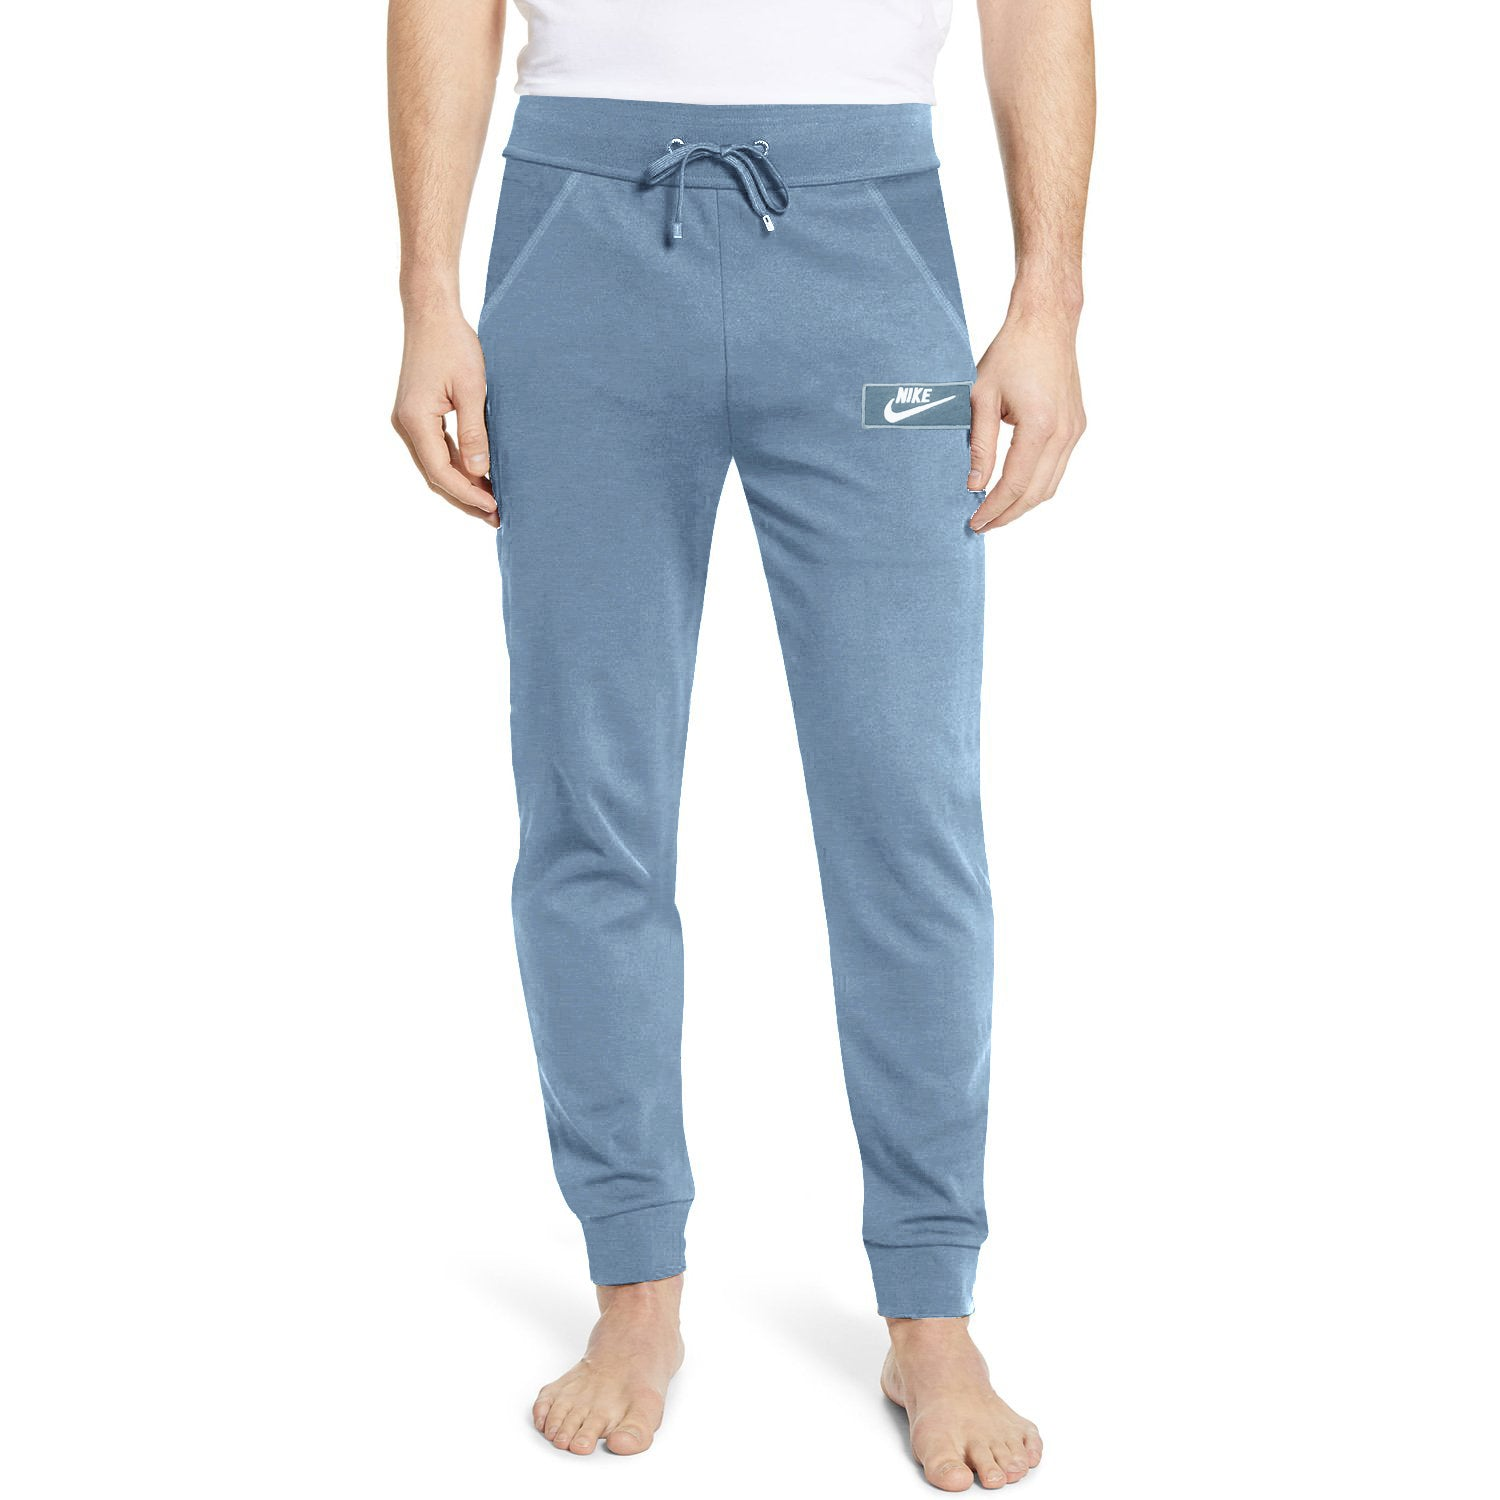 NK Summer Terry Slim Fit Trouser For Men-Steel Blue Melange With White Embroidery-SP4341